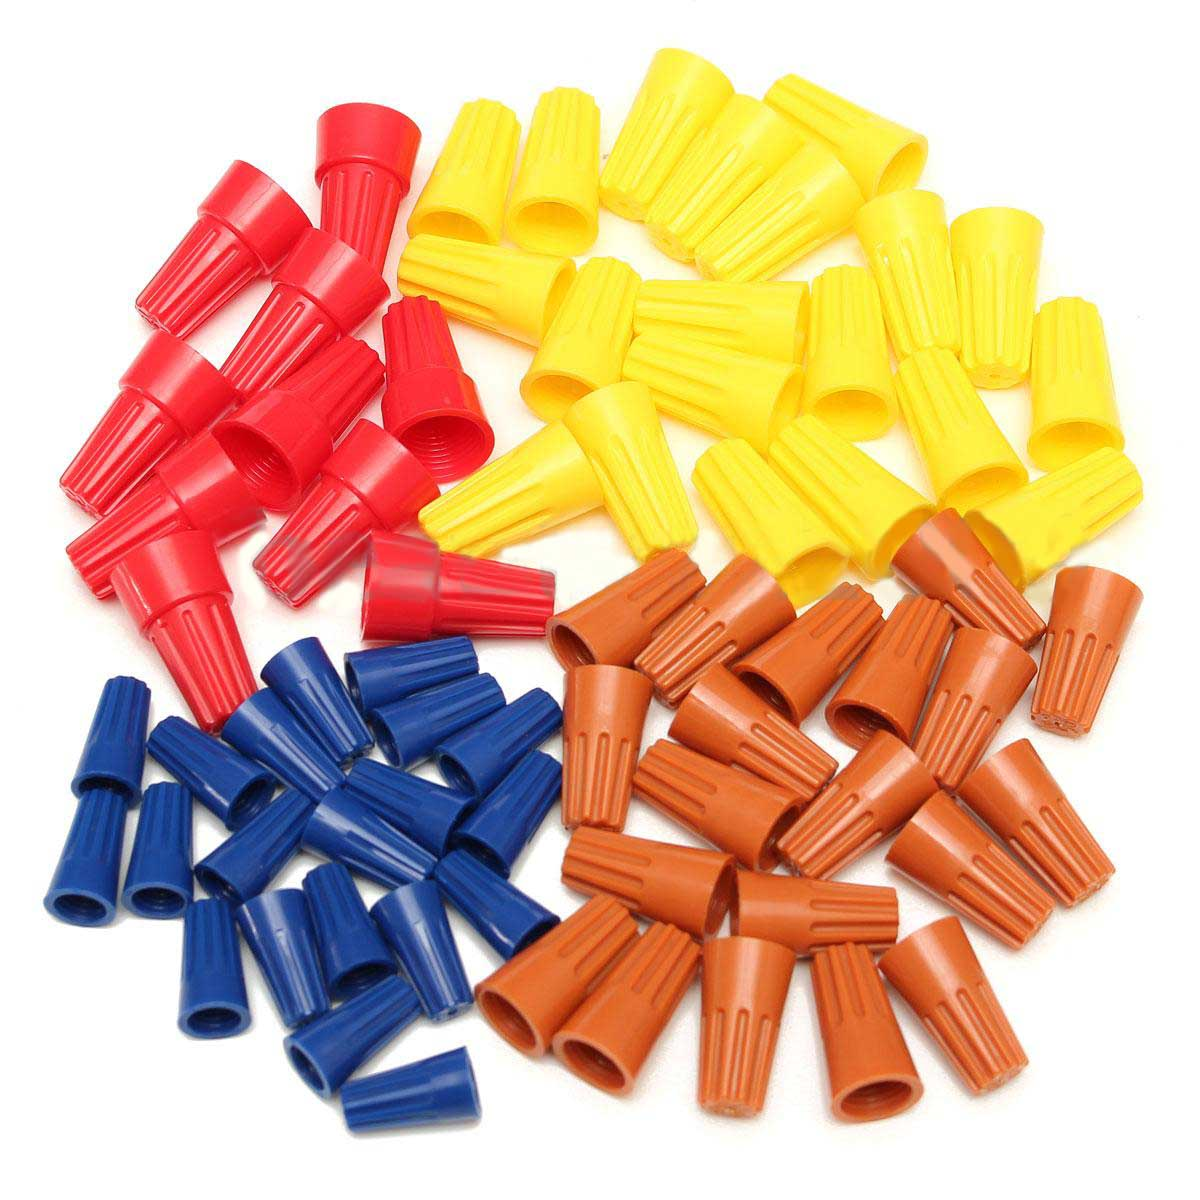 70pcs Set Electrical Wire Twist Connectors Assorted Wire